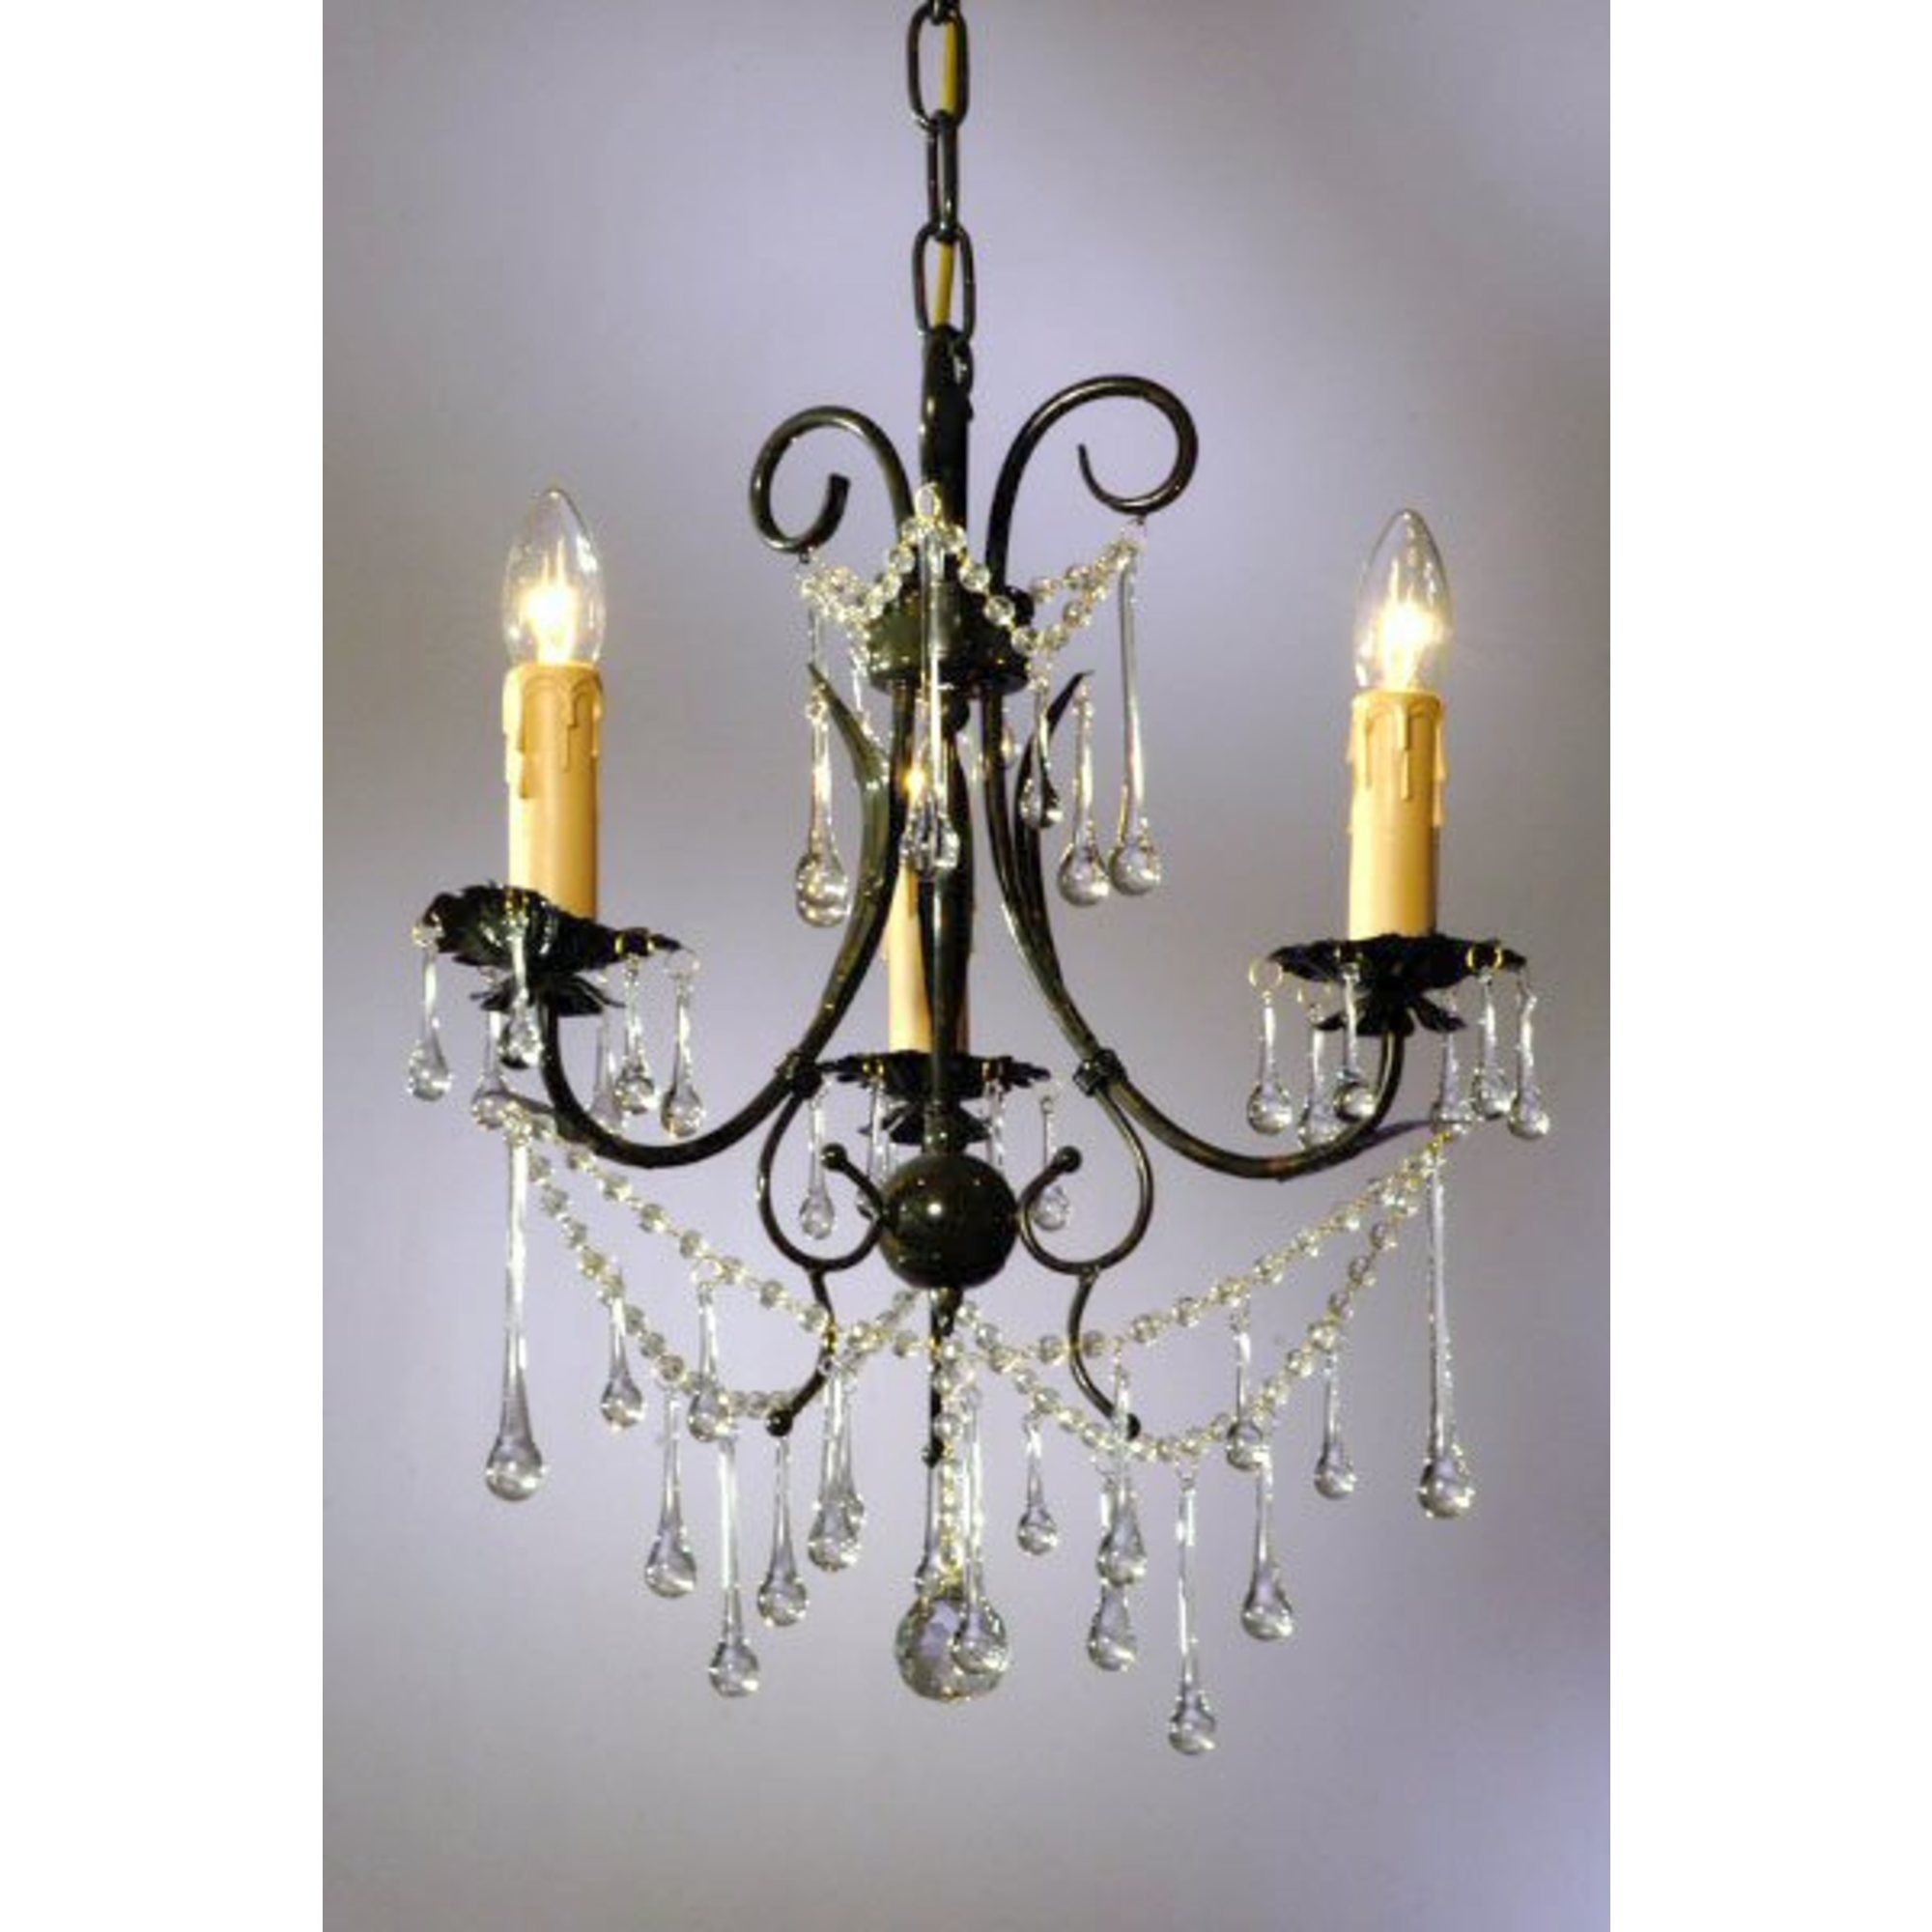 Vintage 3 Light Chandelier - Dark Green and Clear